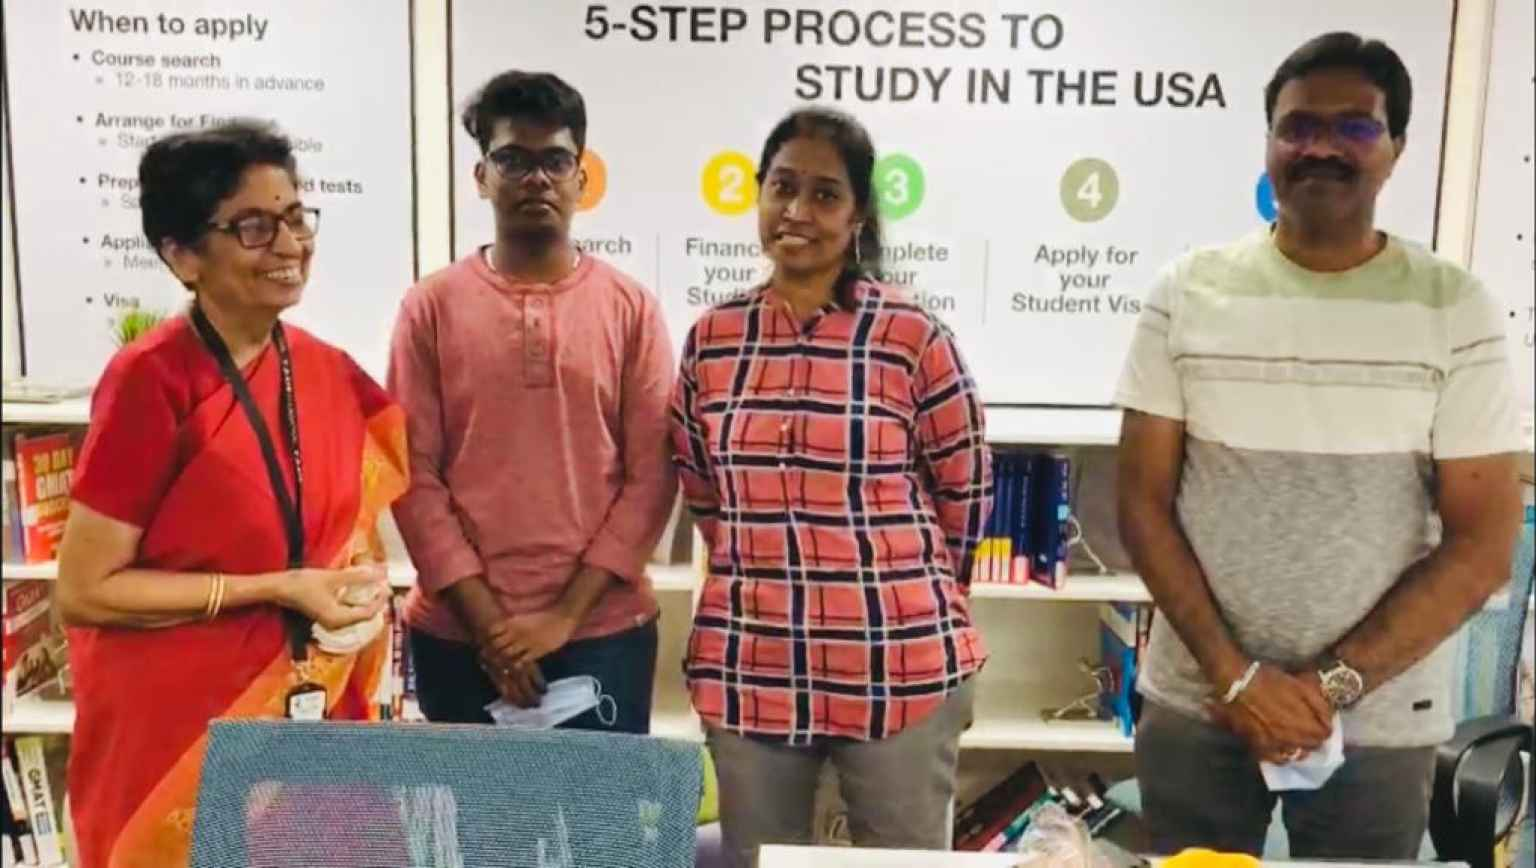 Joyful moments of the family after PDO conducted at Y Axis Foundation Education USA center for UG student Shrujan Shashank who left for Stony Brook for Spring session,2021